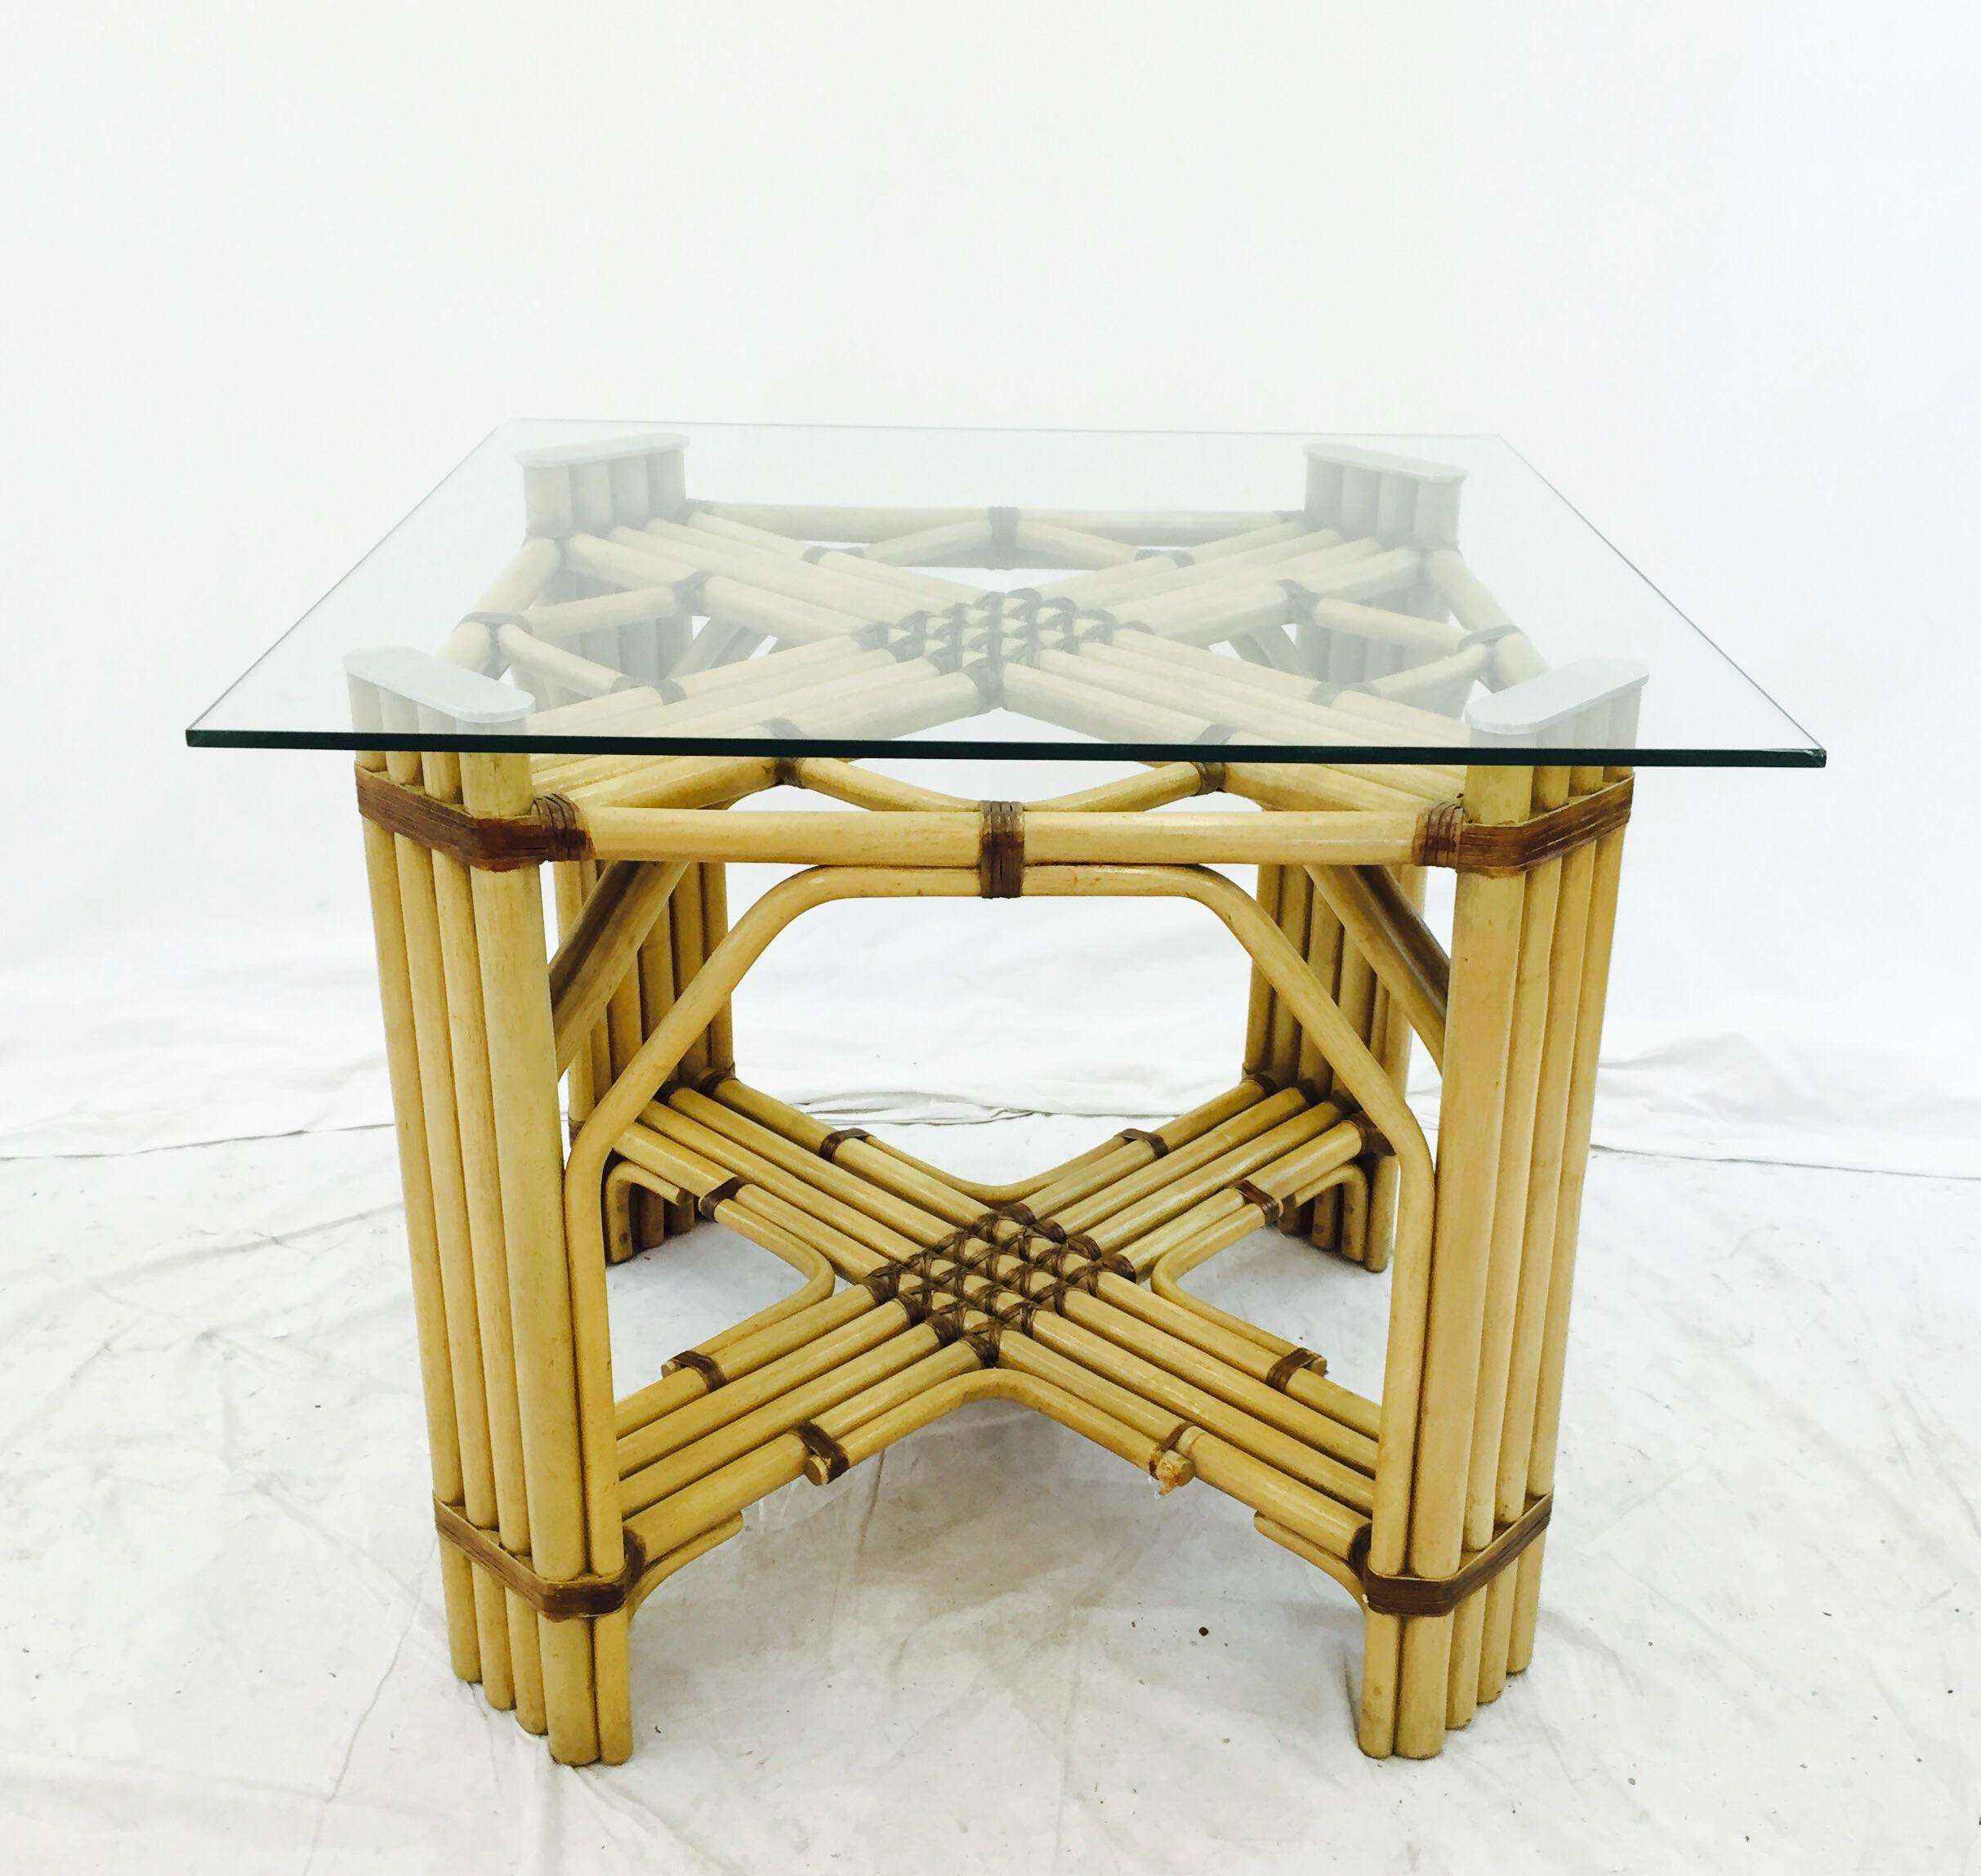 Mid Century Rattan amp Glass Top Dining Table Chairish : 13defe20 0595 49e2 ae63 38a0a04fe212aspectfitampwidth640ampheight640 from www.chairish.com size 640 x 640 jpeg 43kB